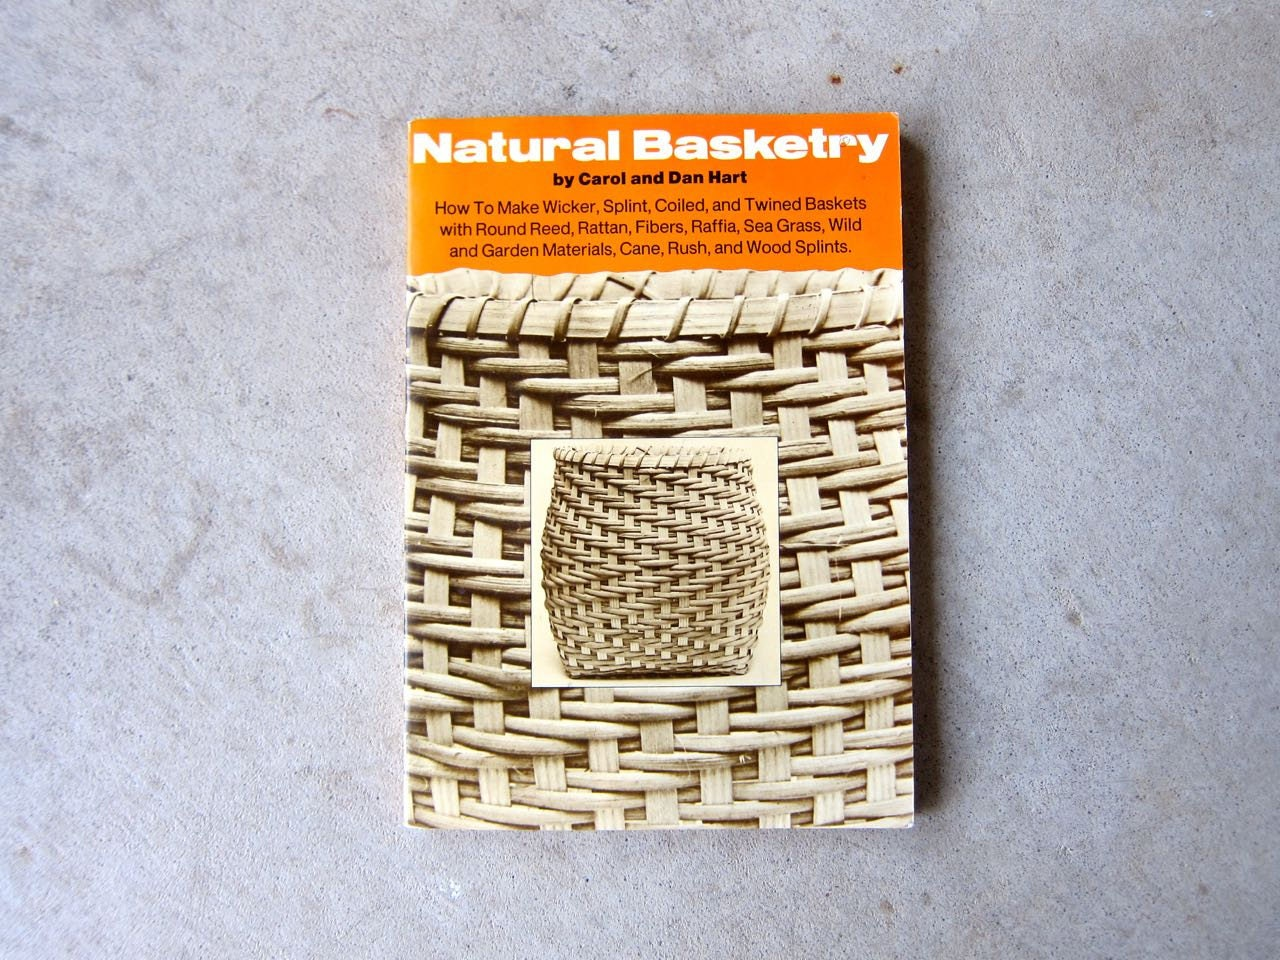 Basket Weaving Books Free : Natural basketry book crafty softcover black white